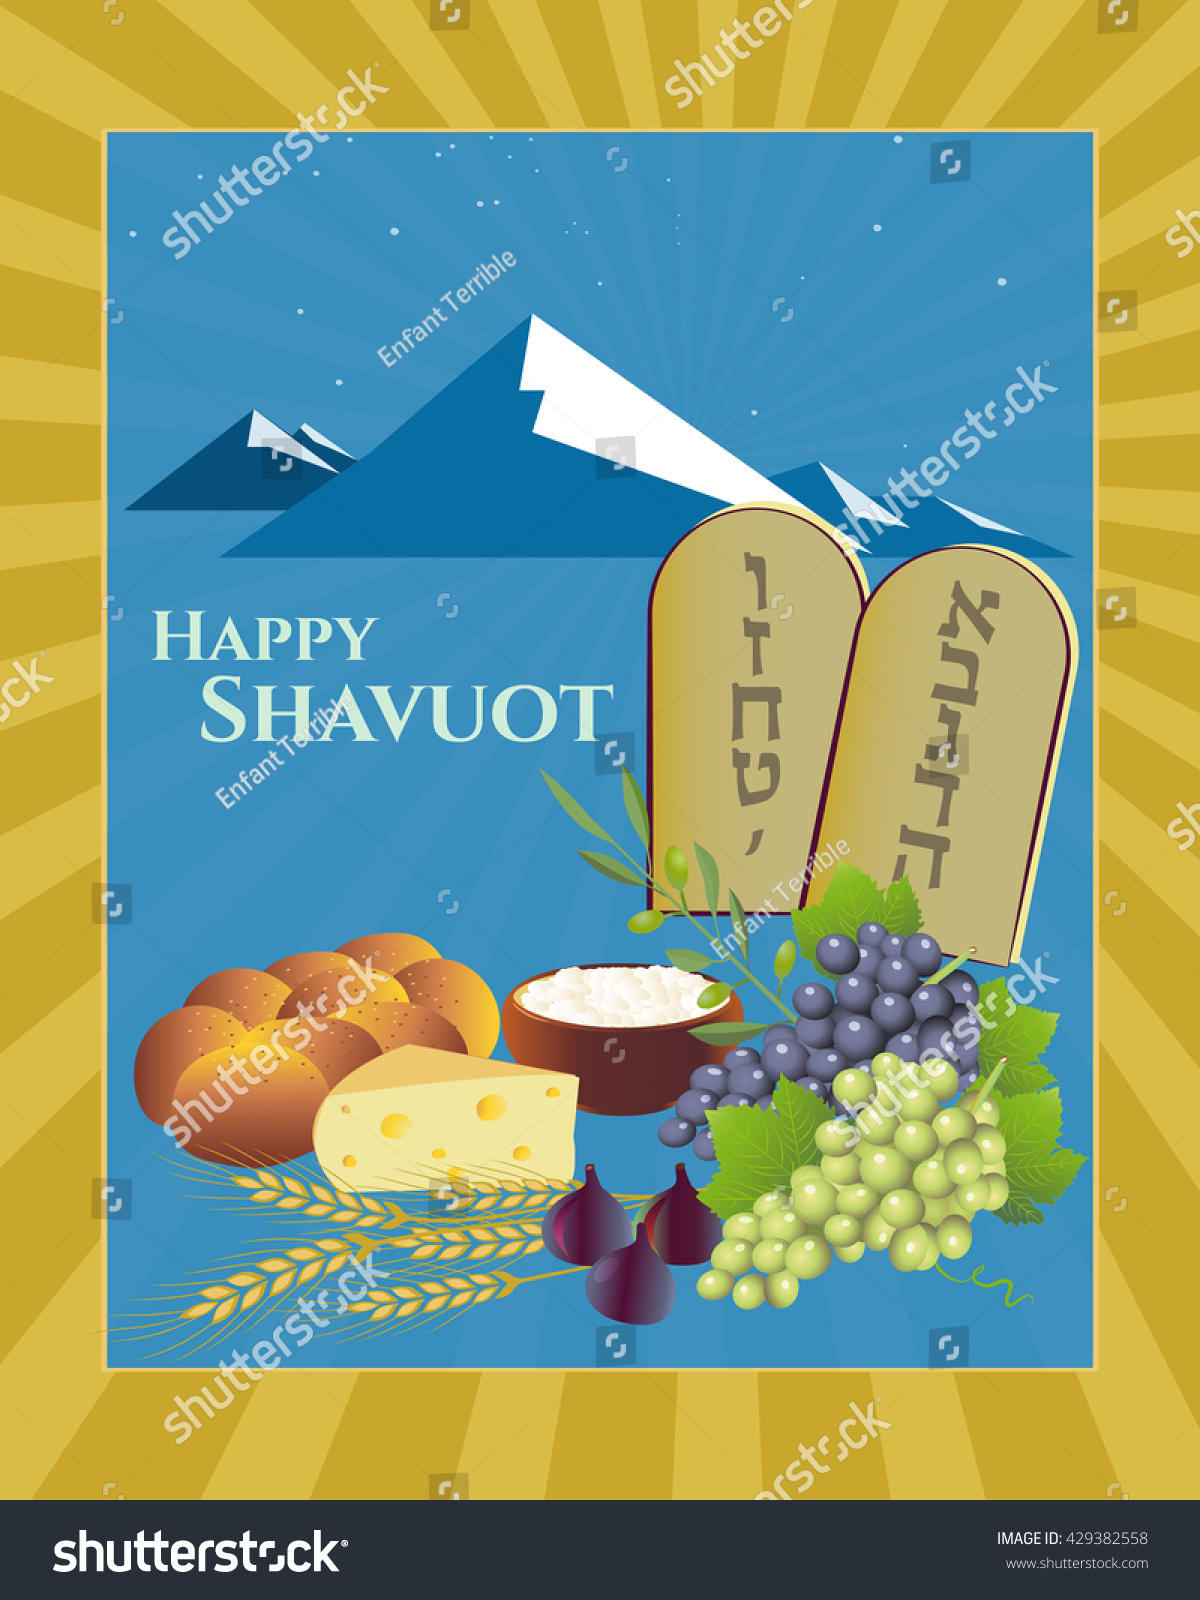 Shavuot Festival Greeting Card Design Vector Template Happy Torah Tablets With Hebrew